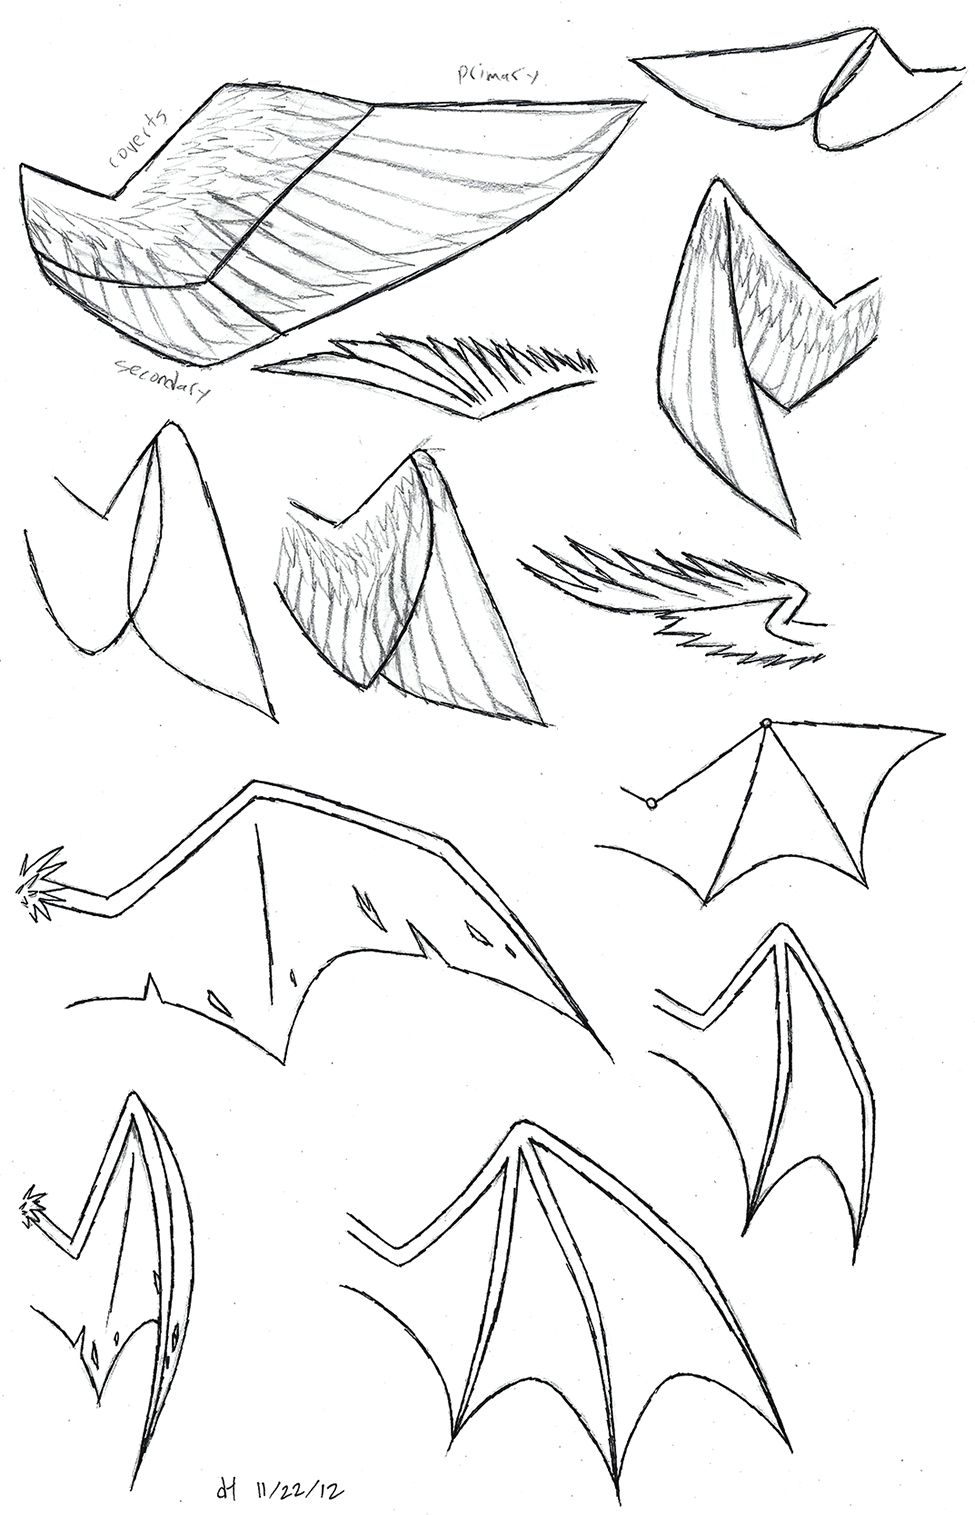 Wolf Ears Drawing : drawing, Study, VibrantEchoes, DeviantArt, Dragon, Drawing,, Wings, Design, Reference